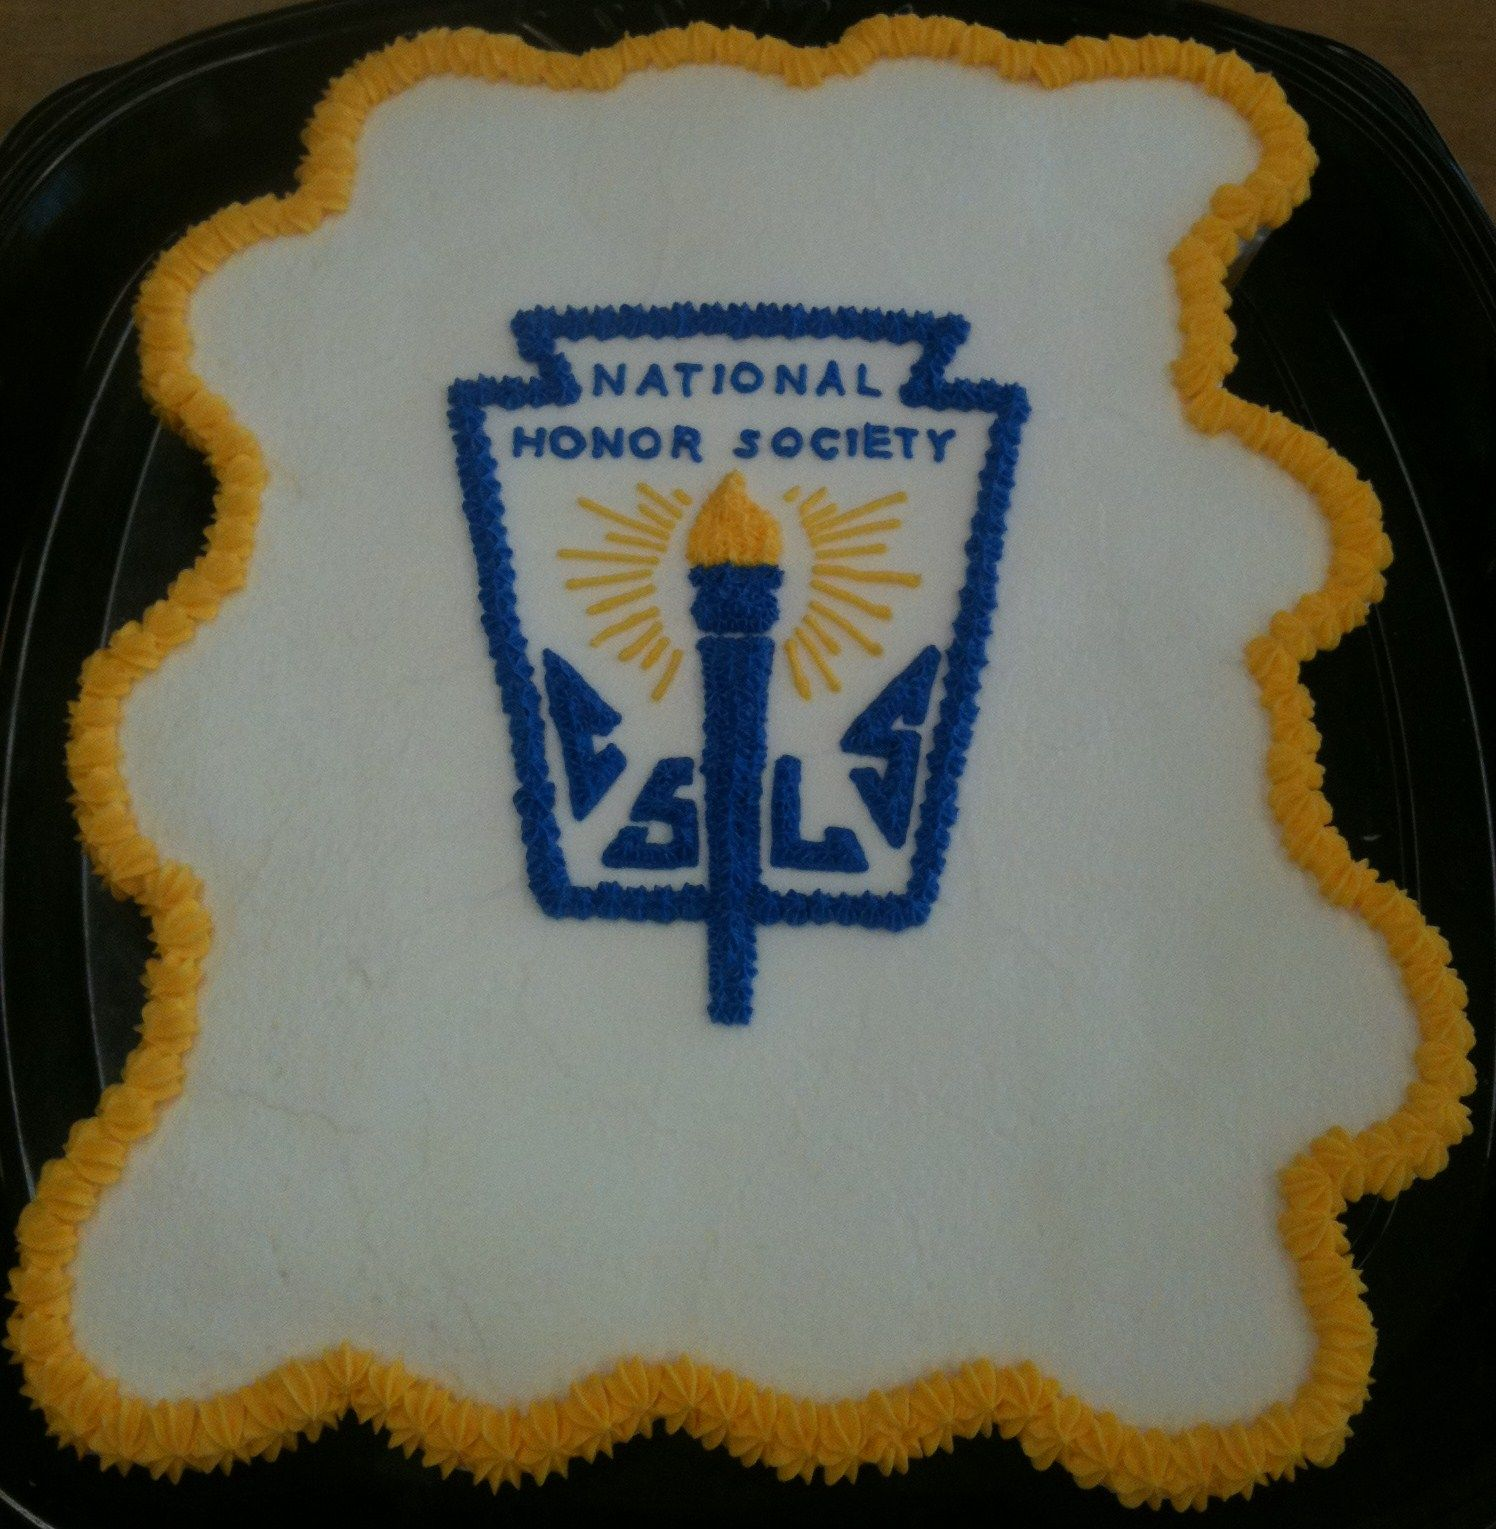 erin s cakes national honor society cake cake decorating national honor society cupcake cake